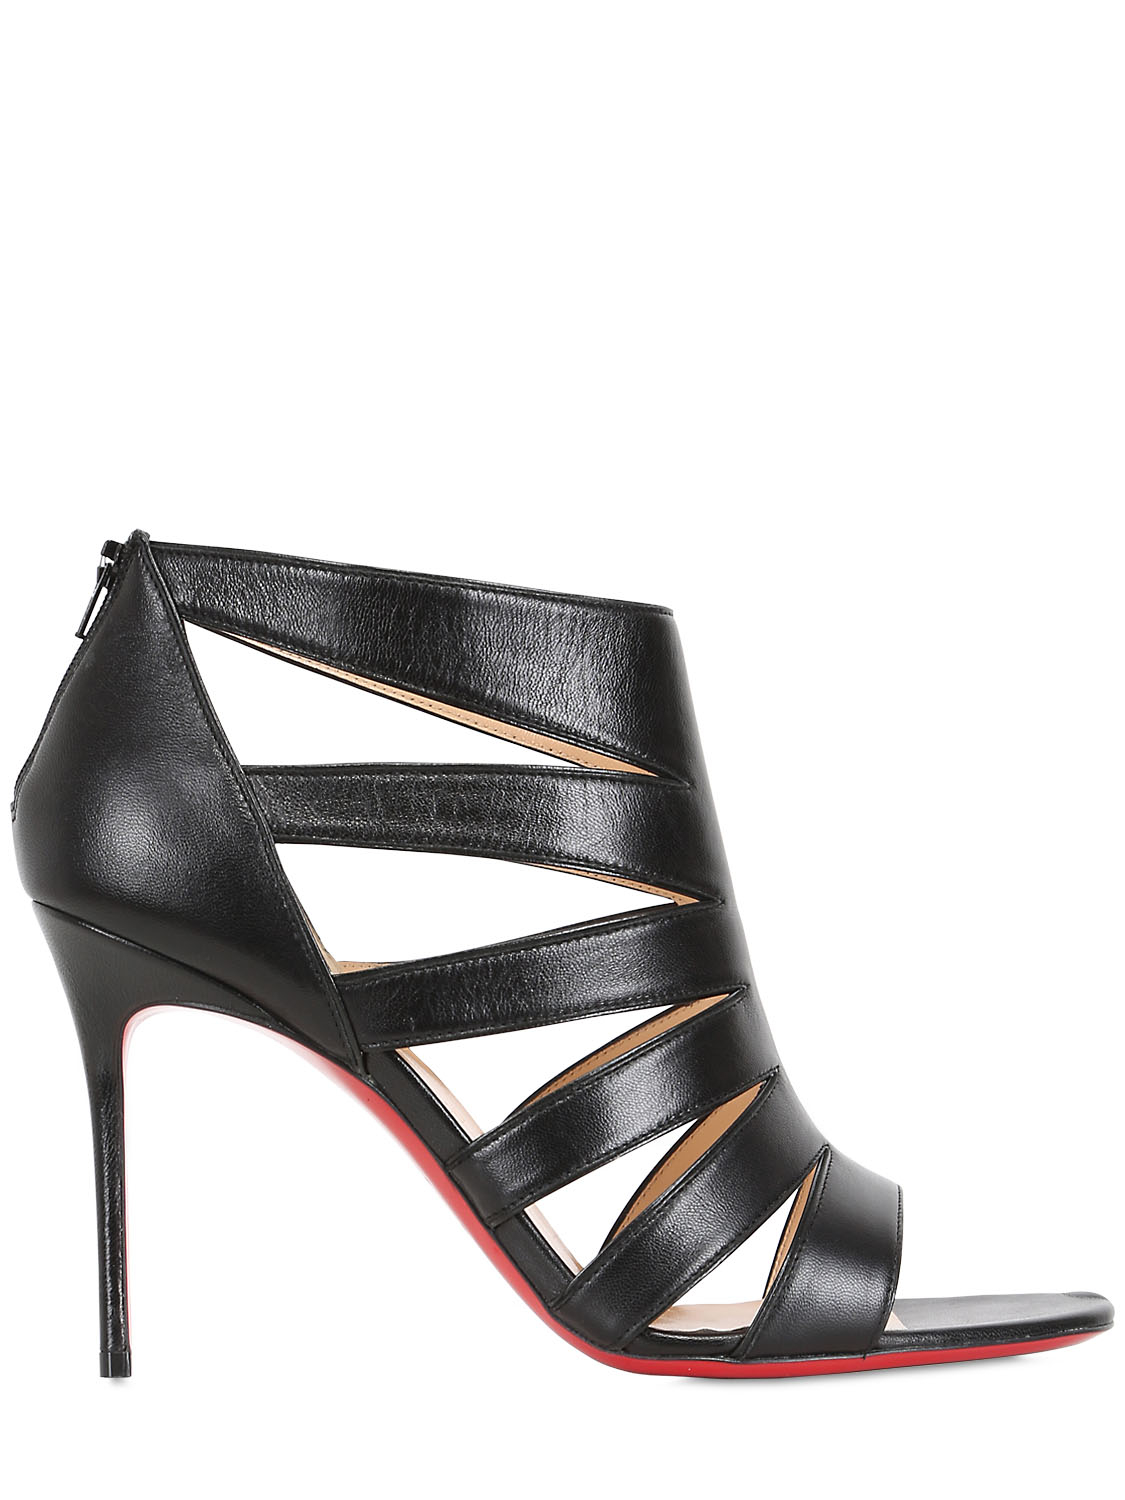 christian louboutin patent leather cage wedges